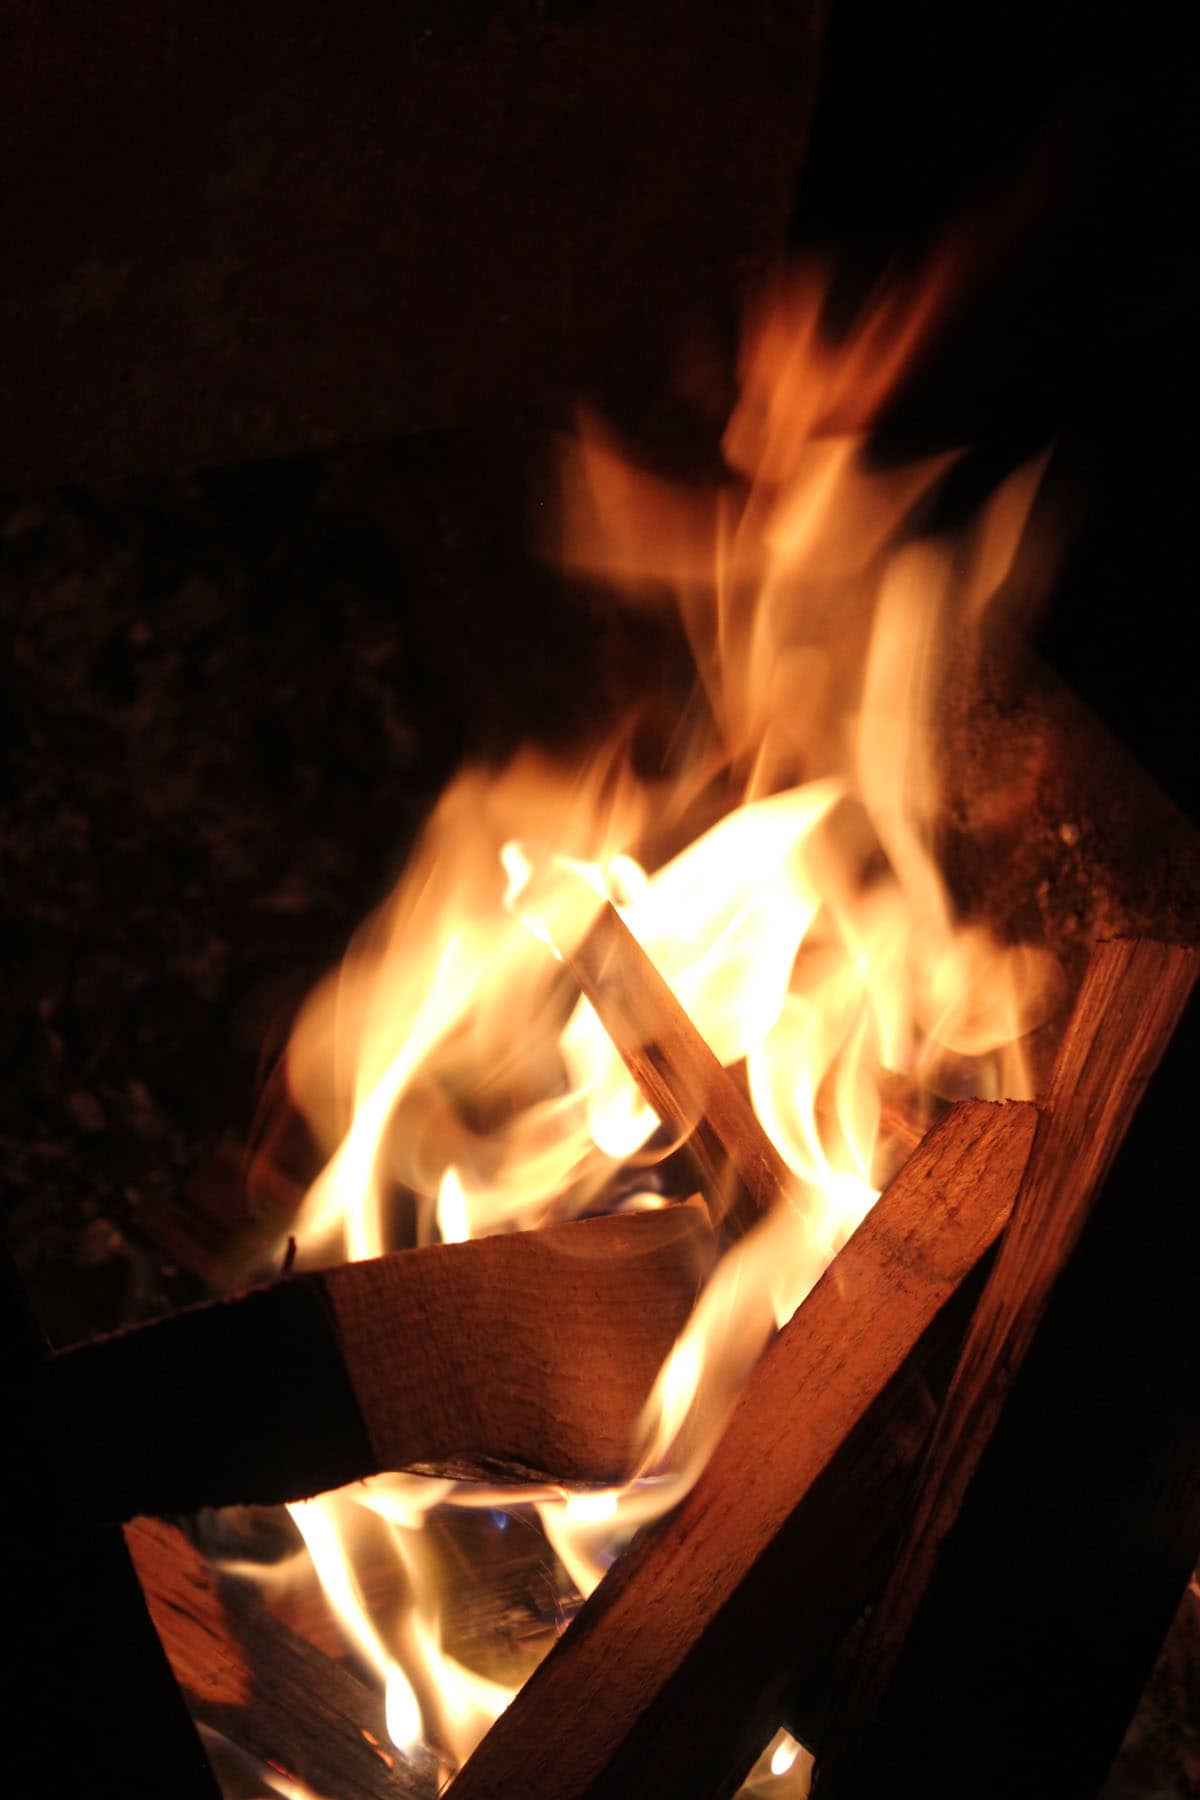 burning wood chips in charcoal grill